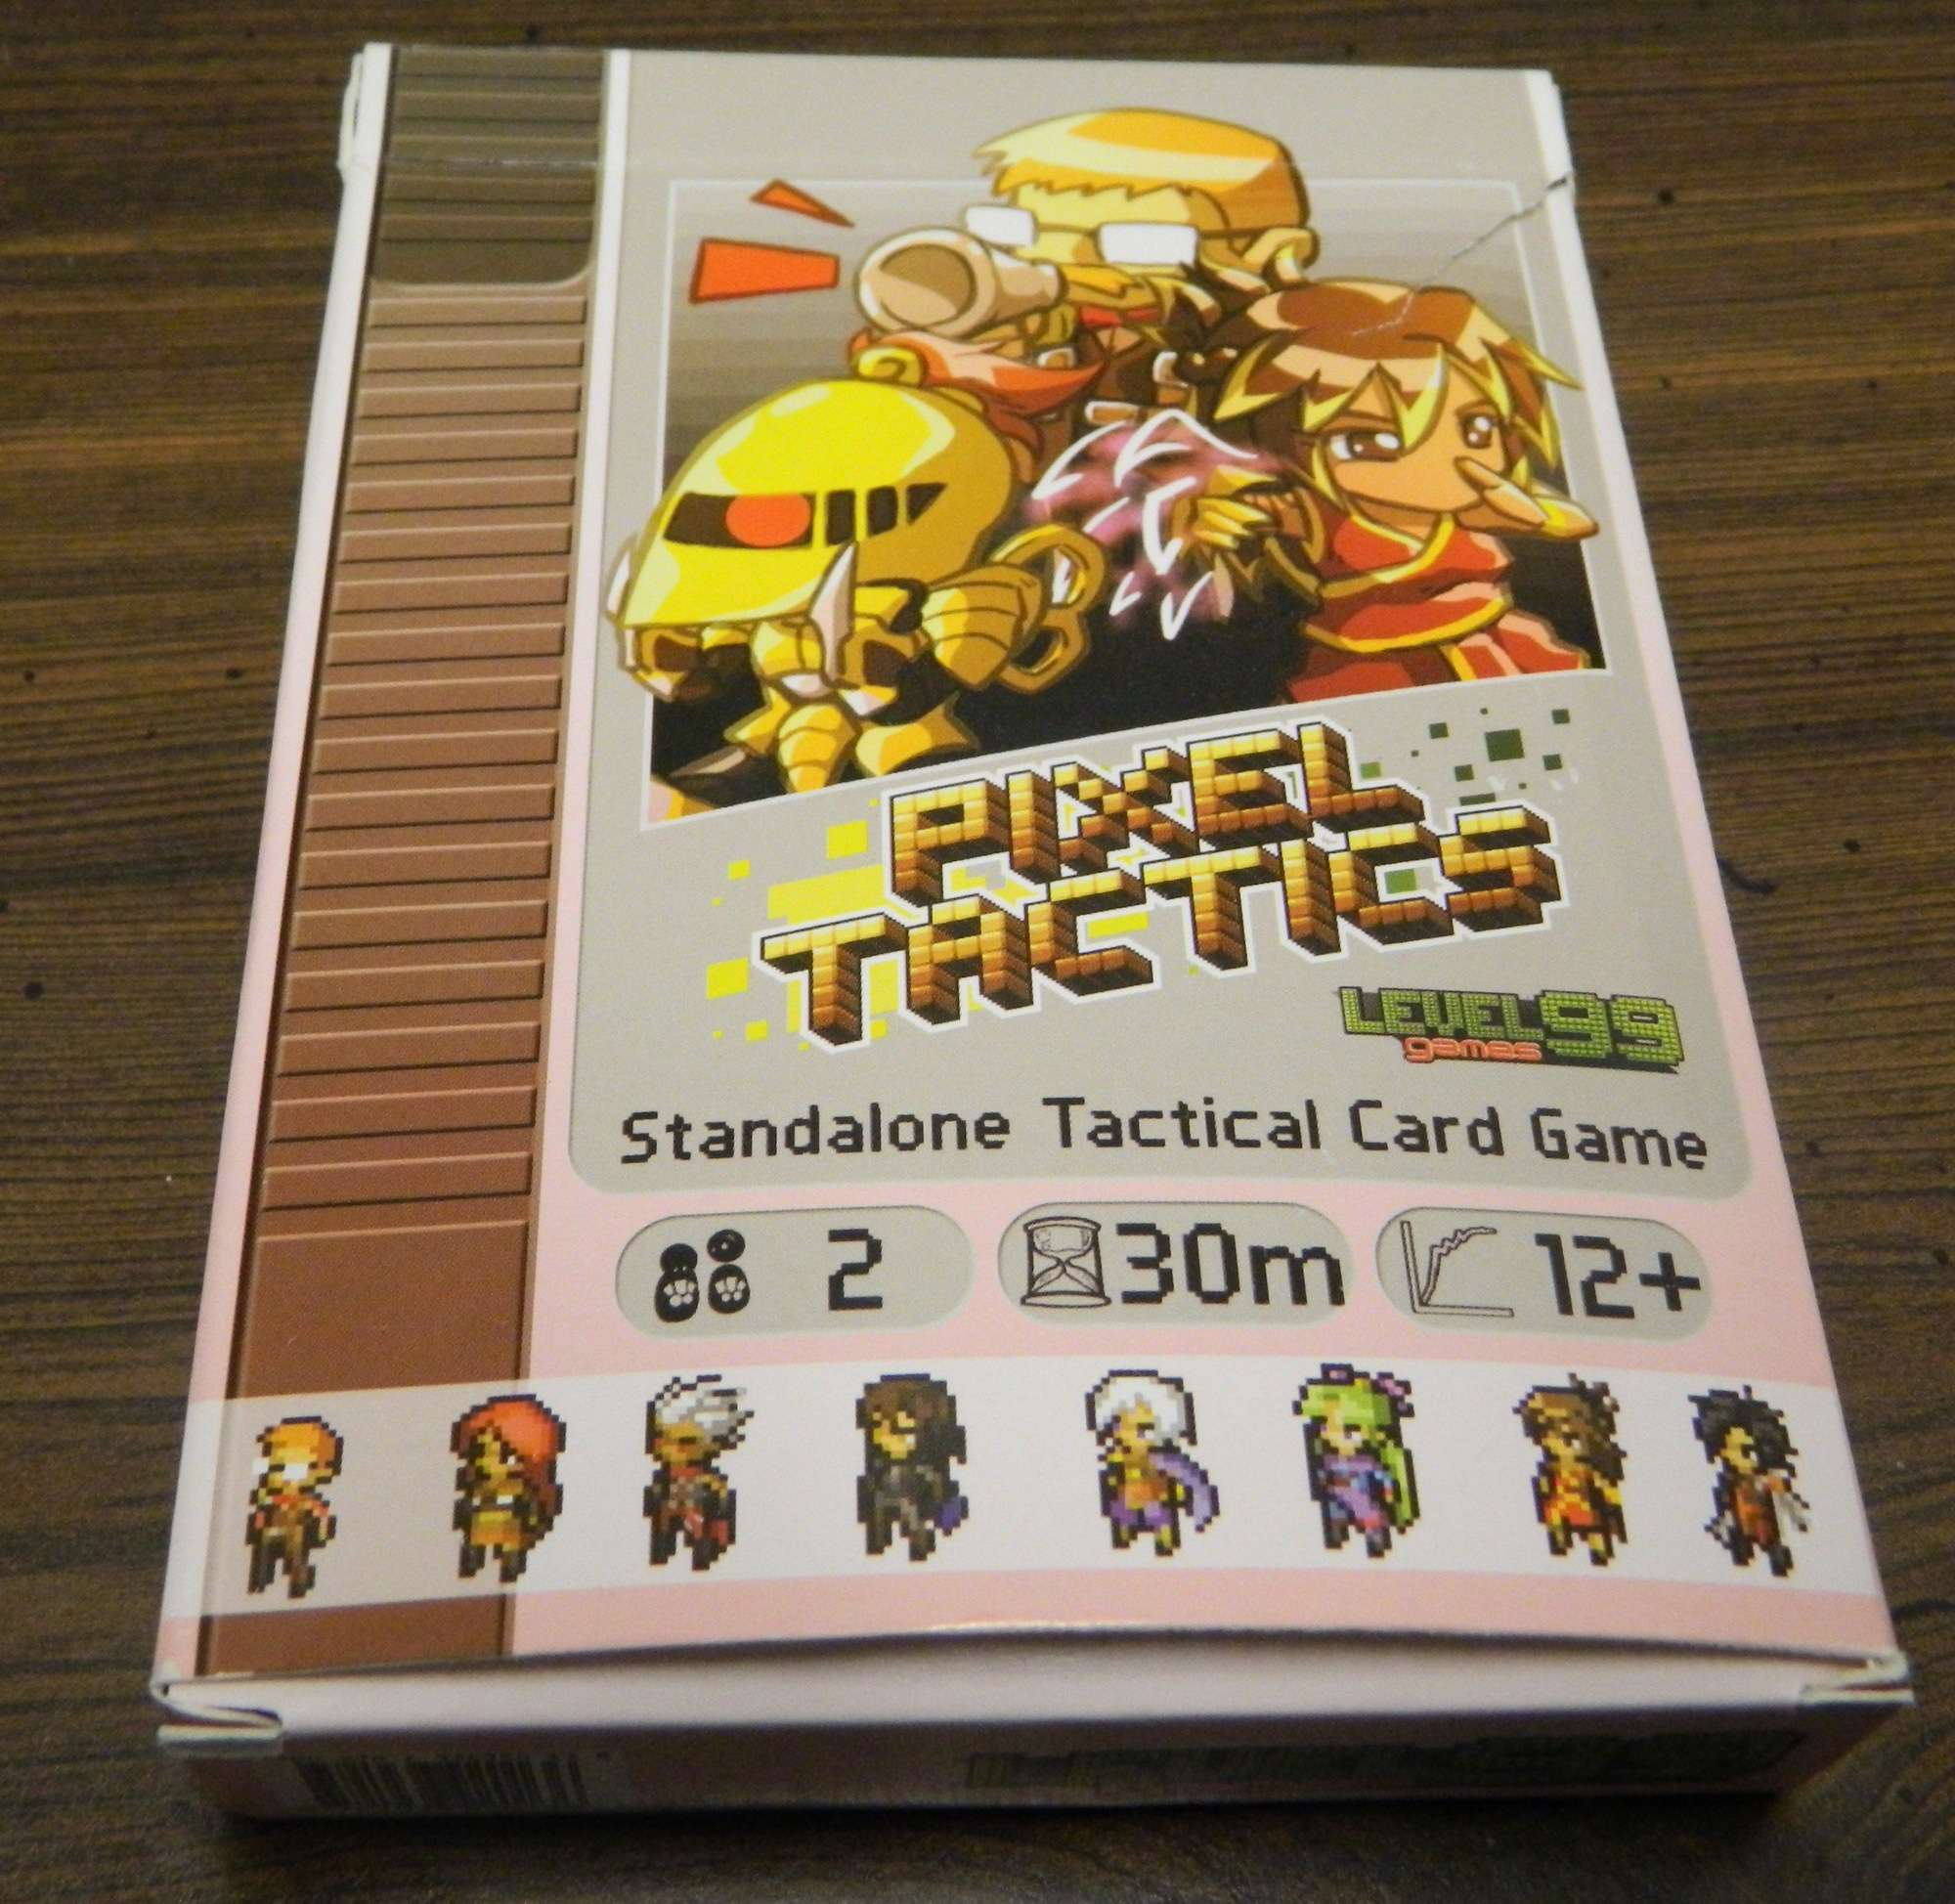 Box for Pixel Tactics